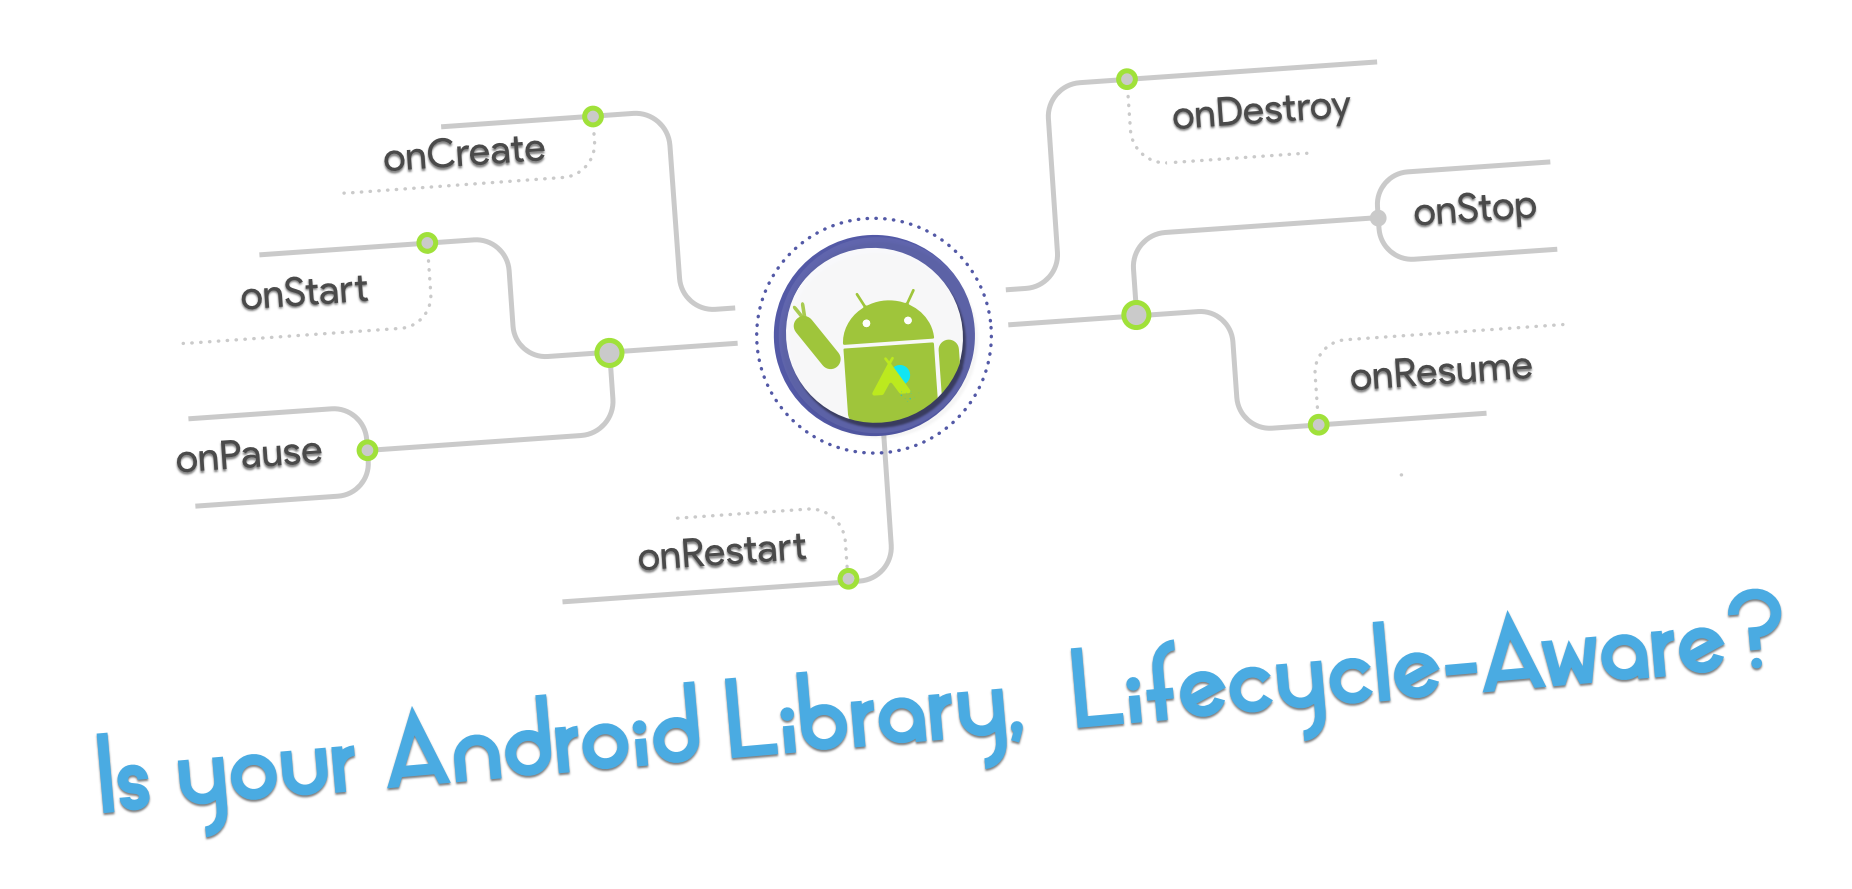 Image Library Android - The Best Library 2018